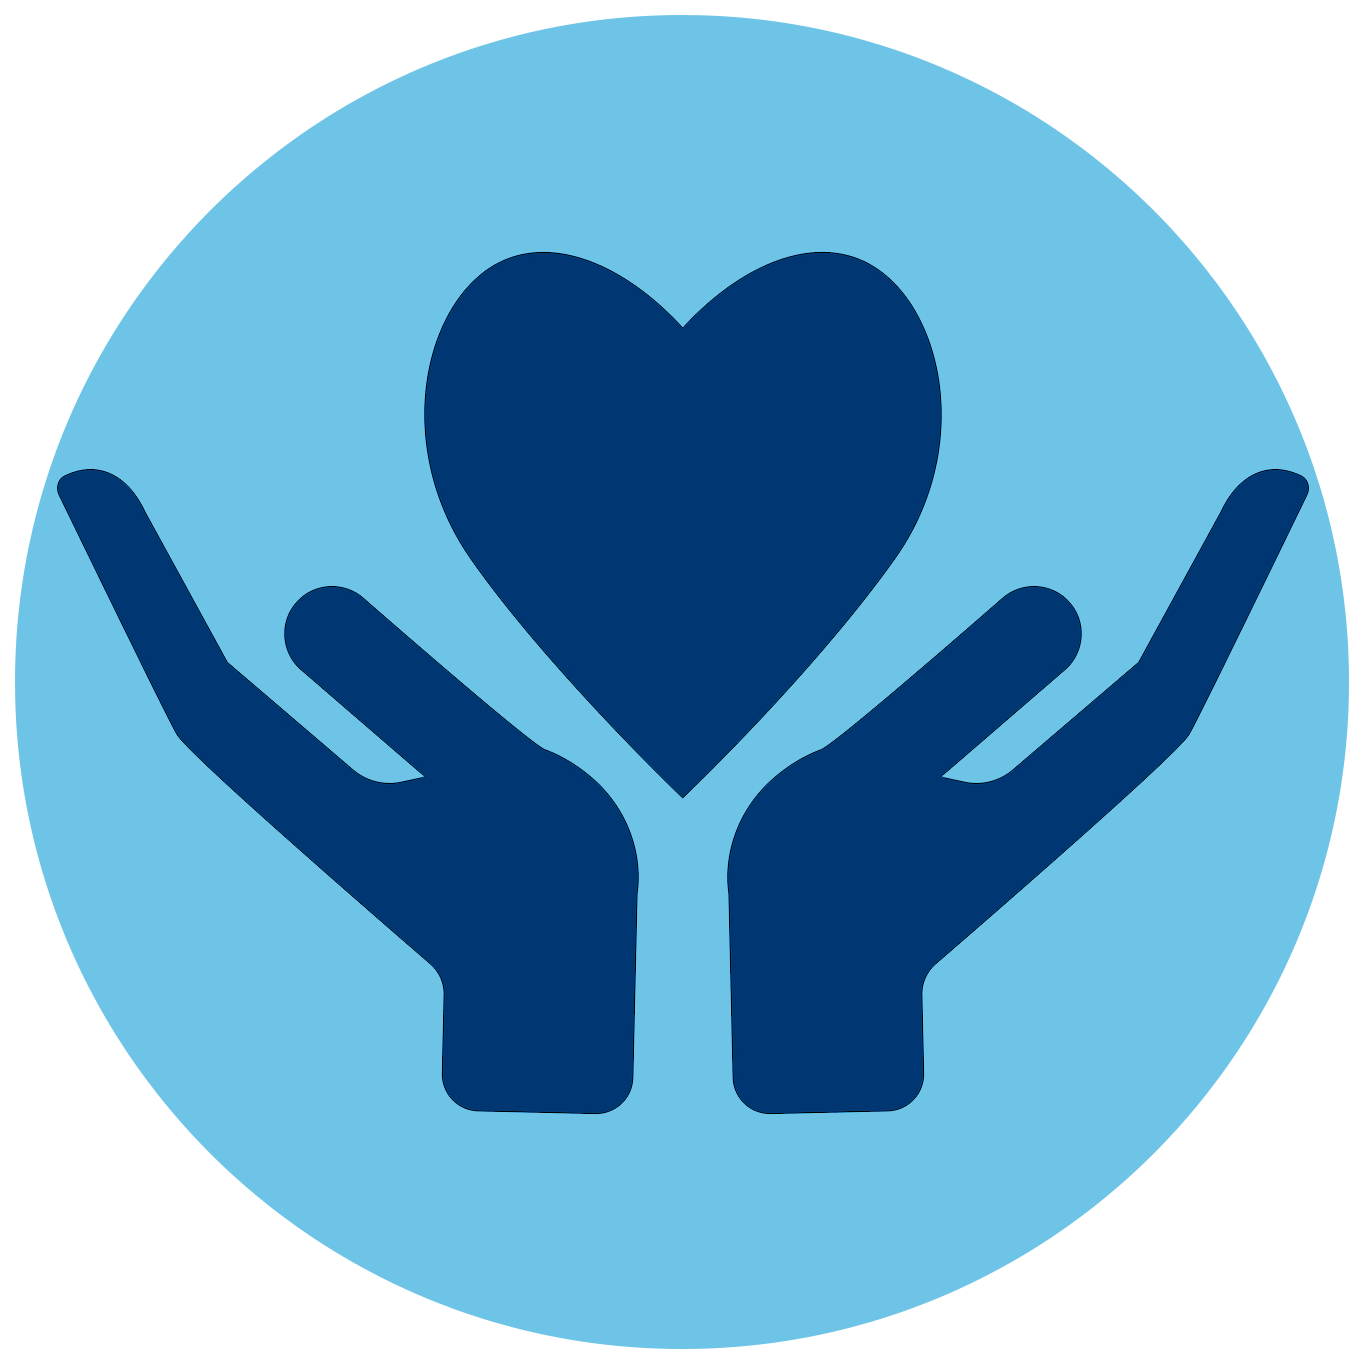 donation-icon-circle.png